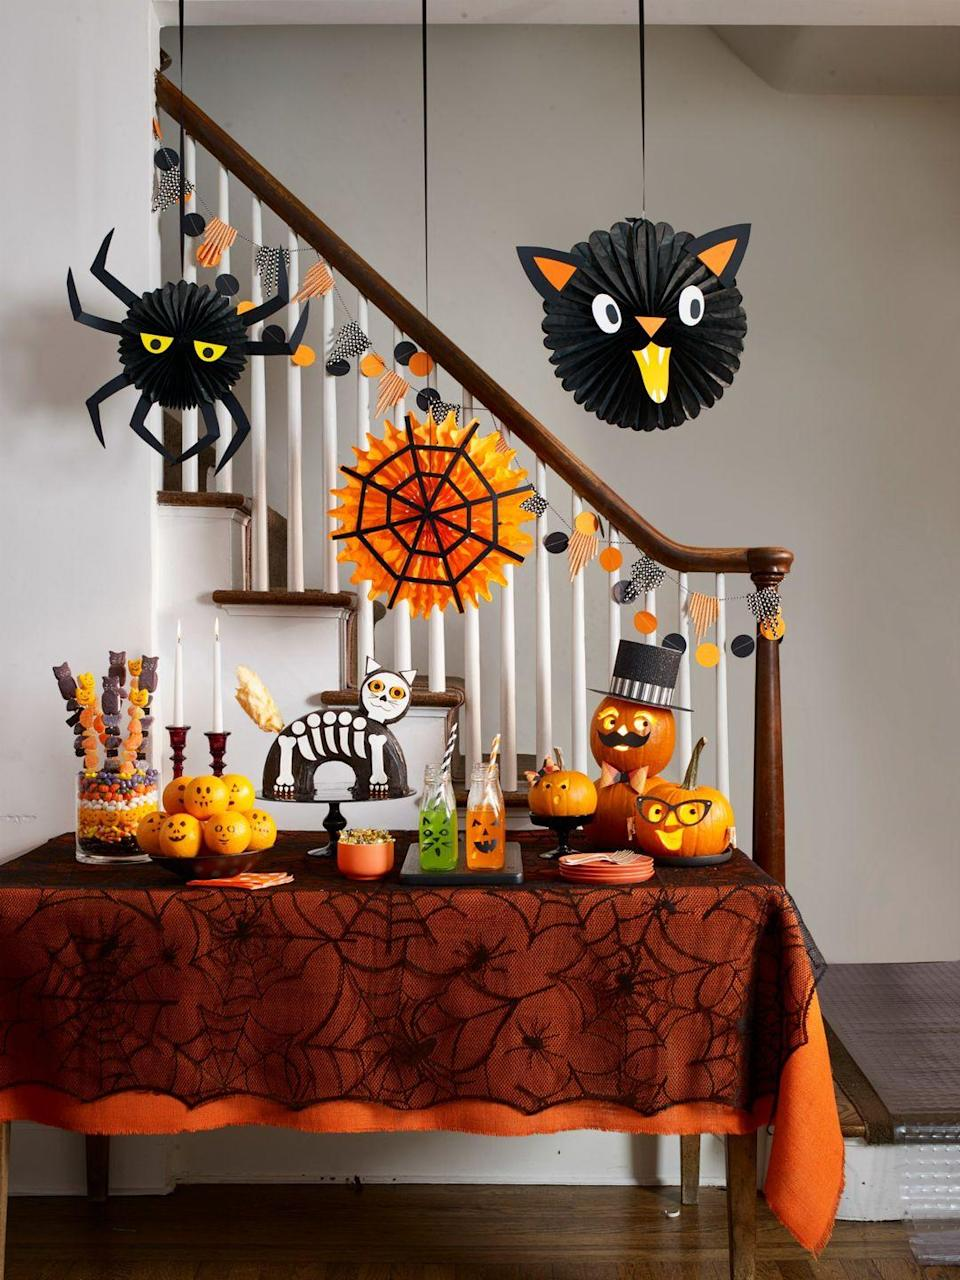 """<p>Suspend a few high-flying critters over the snack table at your Halloween party to really get everyone in the spirit. </p><p><strong>What You'll Need:</strong> <a href=""""https://www.amazon.com/Halloween-Decorations-Colorful-Streamers-Supplies/dp/B07XL4R37L/ref=sr_1_4?dchild=1&keywords=halloween+ceiling+decor&qid=1594917483&sr=8-4&tag=syn-yahoo-20&ascsubtag=%5Bartid%7C10070.g.1279%5Bsrc%7Cyahoo-us"""" rel=""""nofollow noopener"""" target=""""_blank"""" data-ylk=""""slk:Halloween hanging decor"""" class=""""link rapid-noclick-resp"""">Halloween hanging decor</a> ($10, Amazon); </p>"""